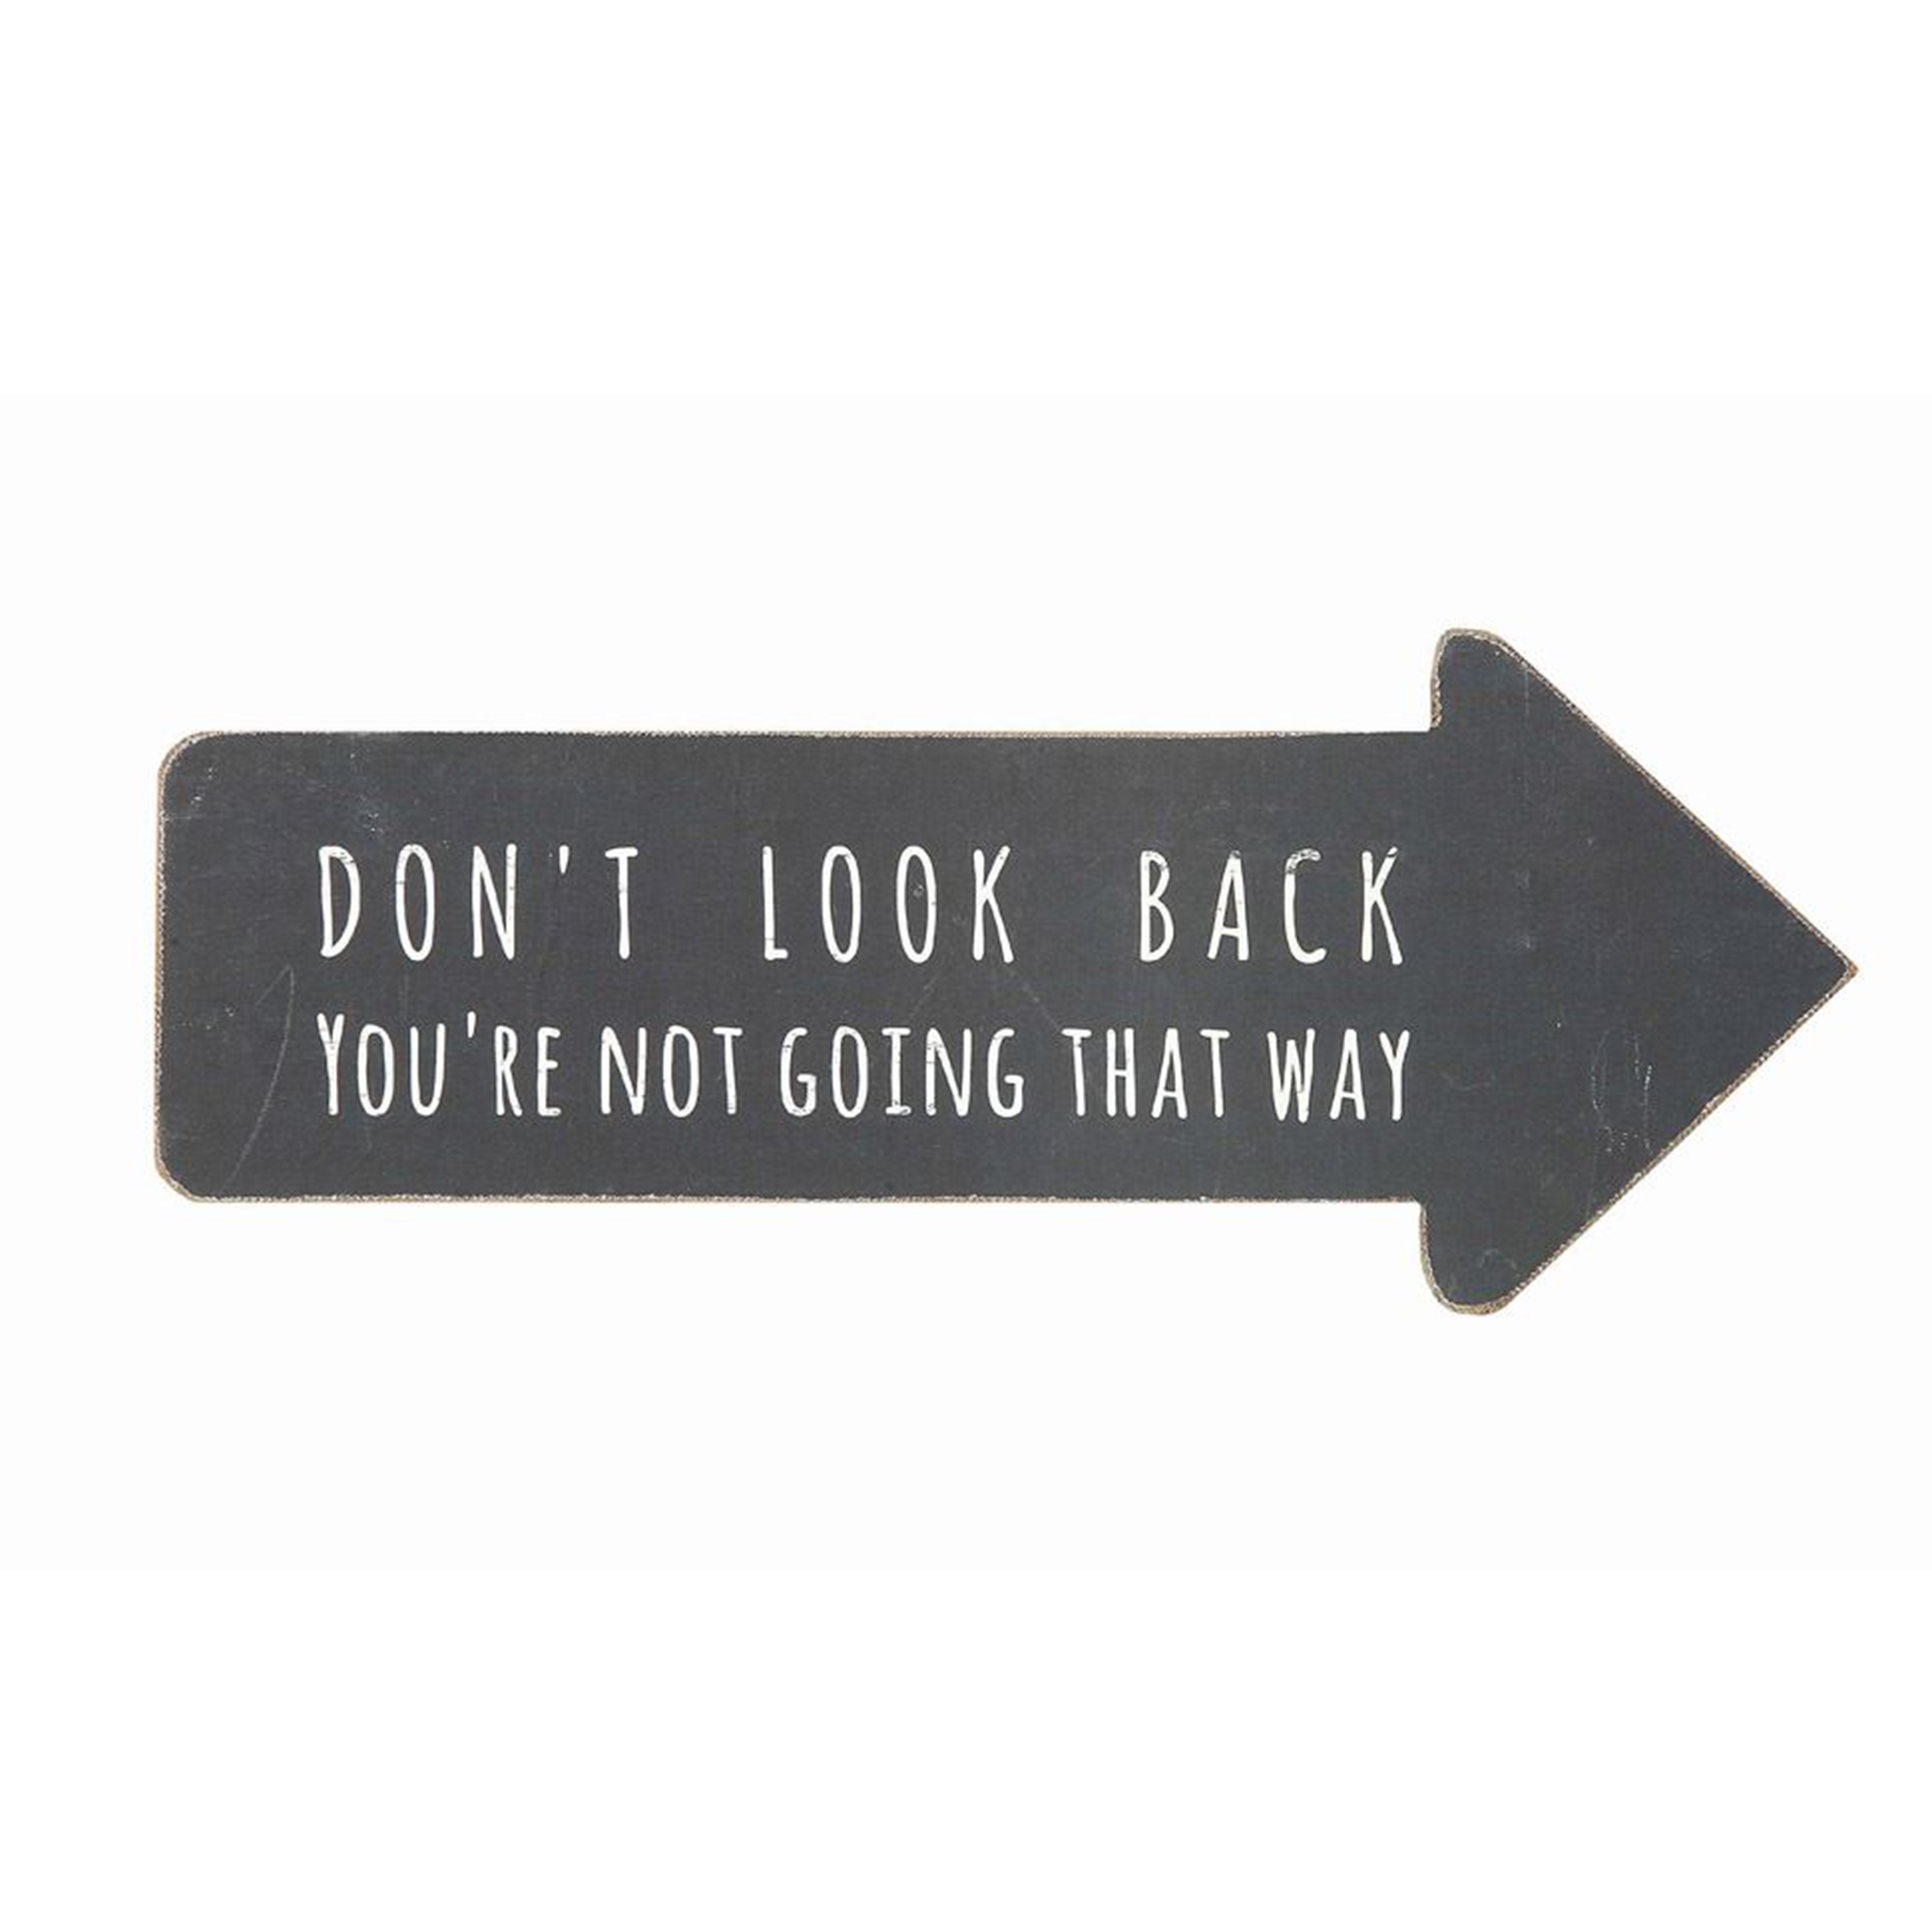 Don't Look Back. You're Not Going That Way. Arrow Sign